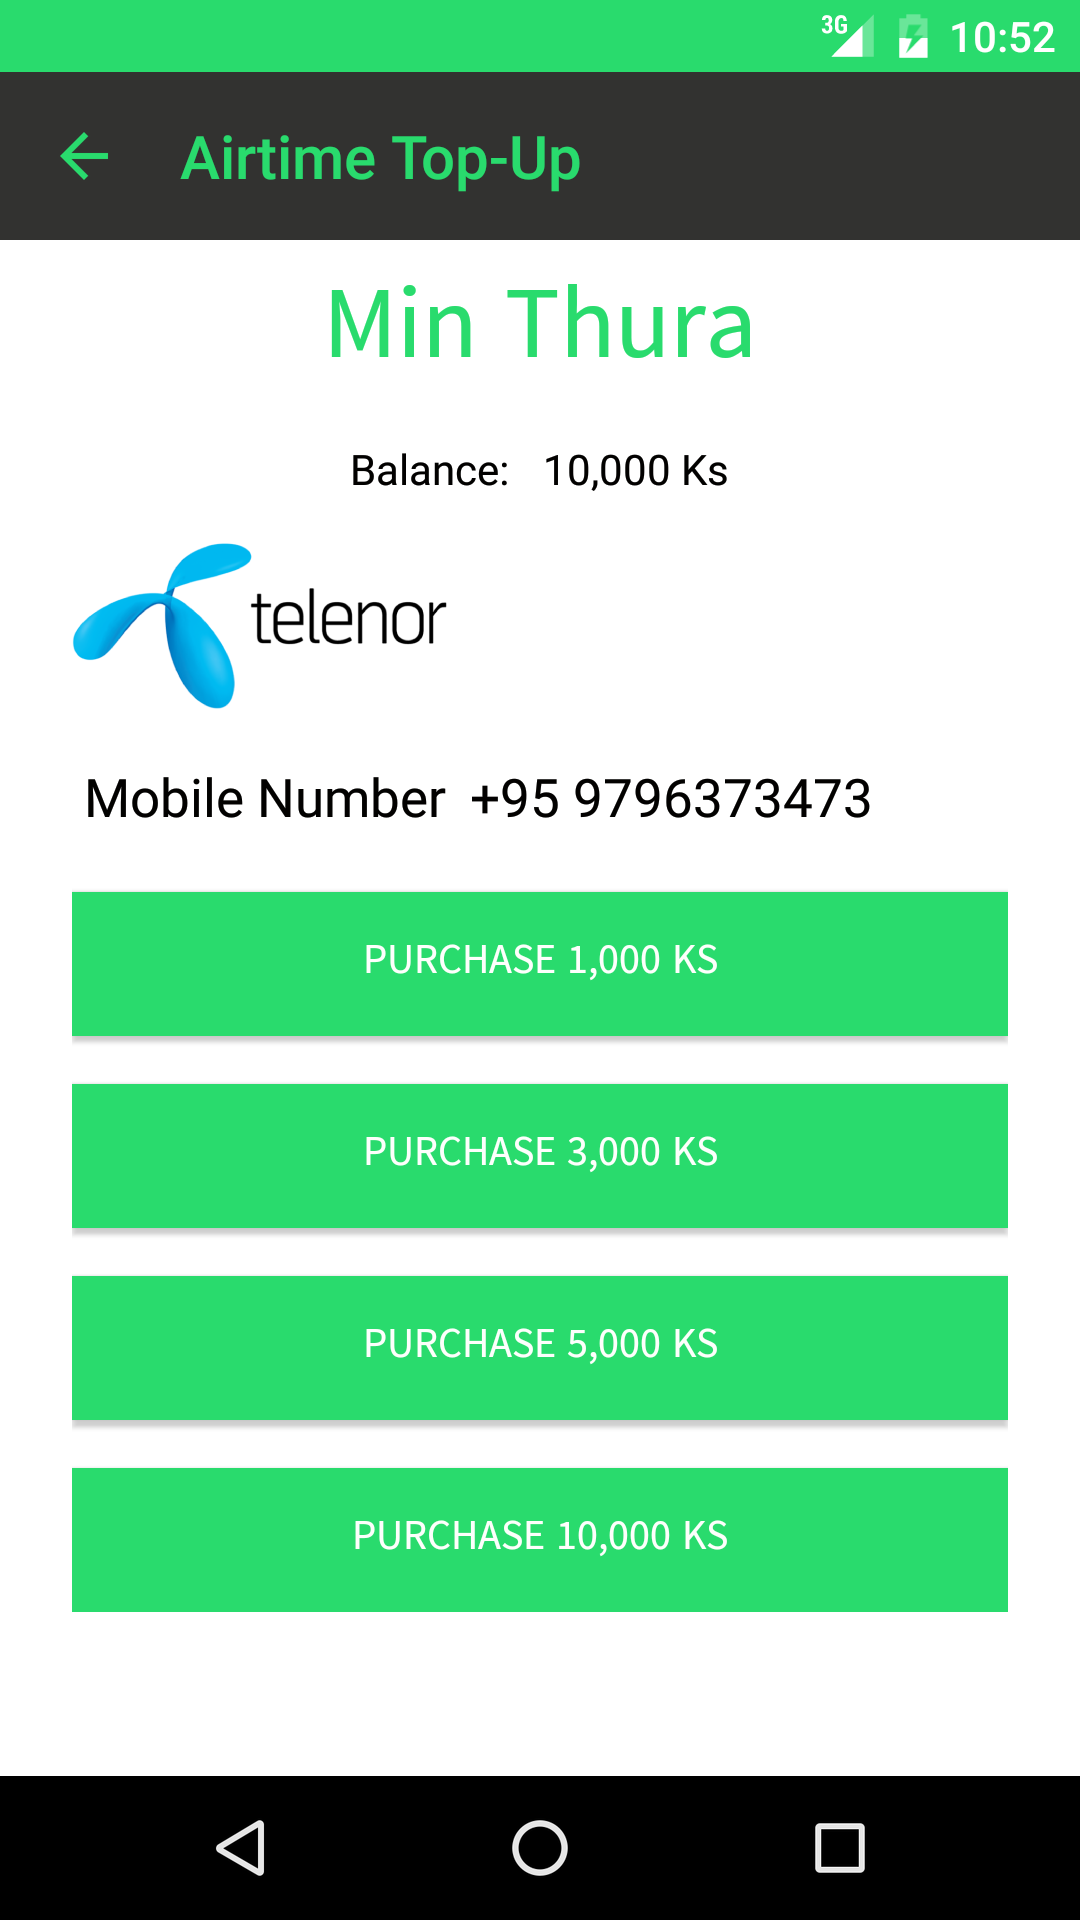 Ongo AIRTIME TOP-UP